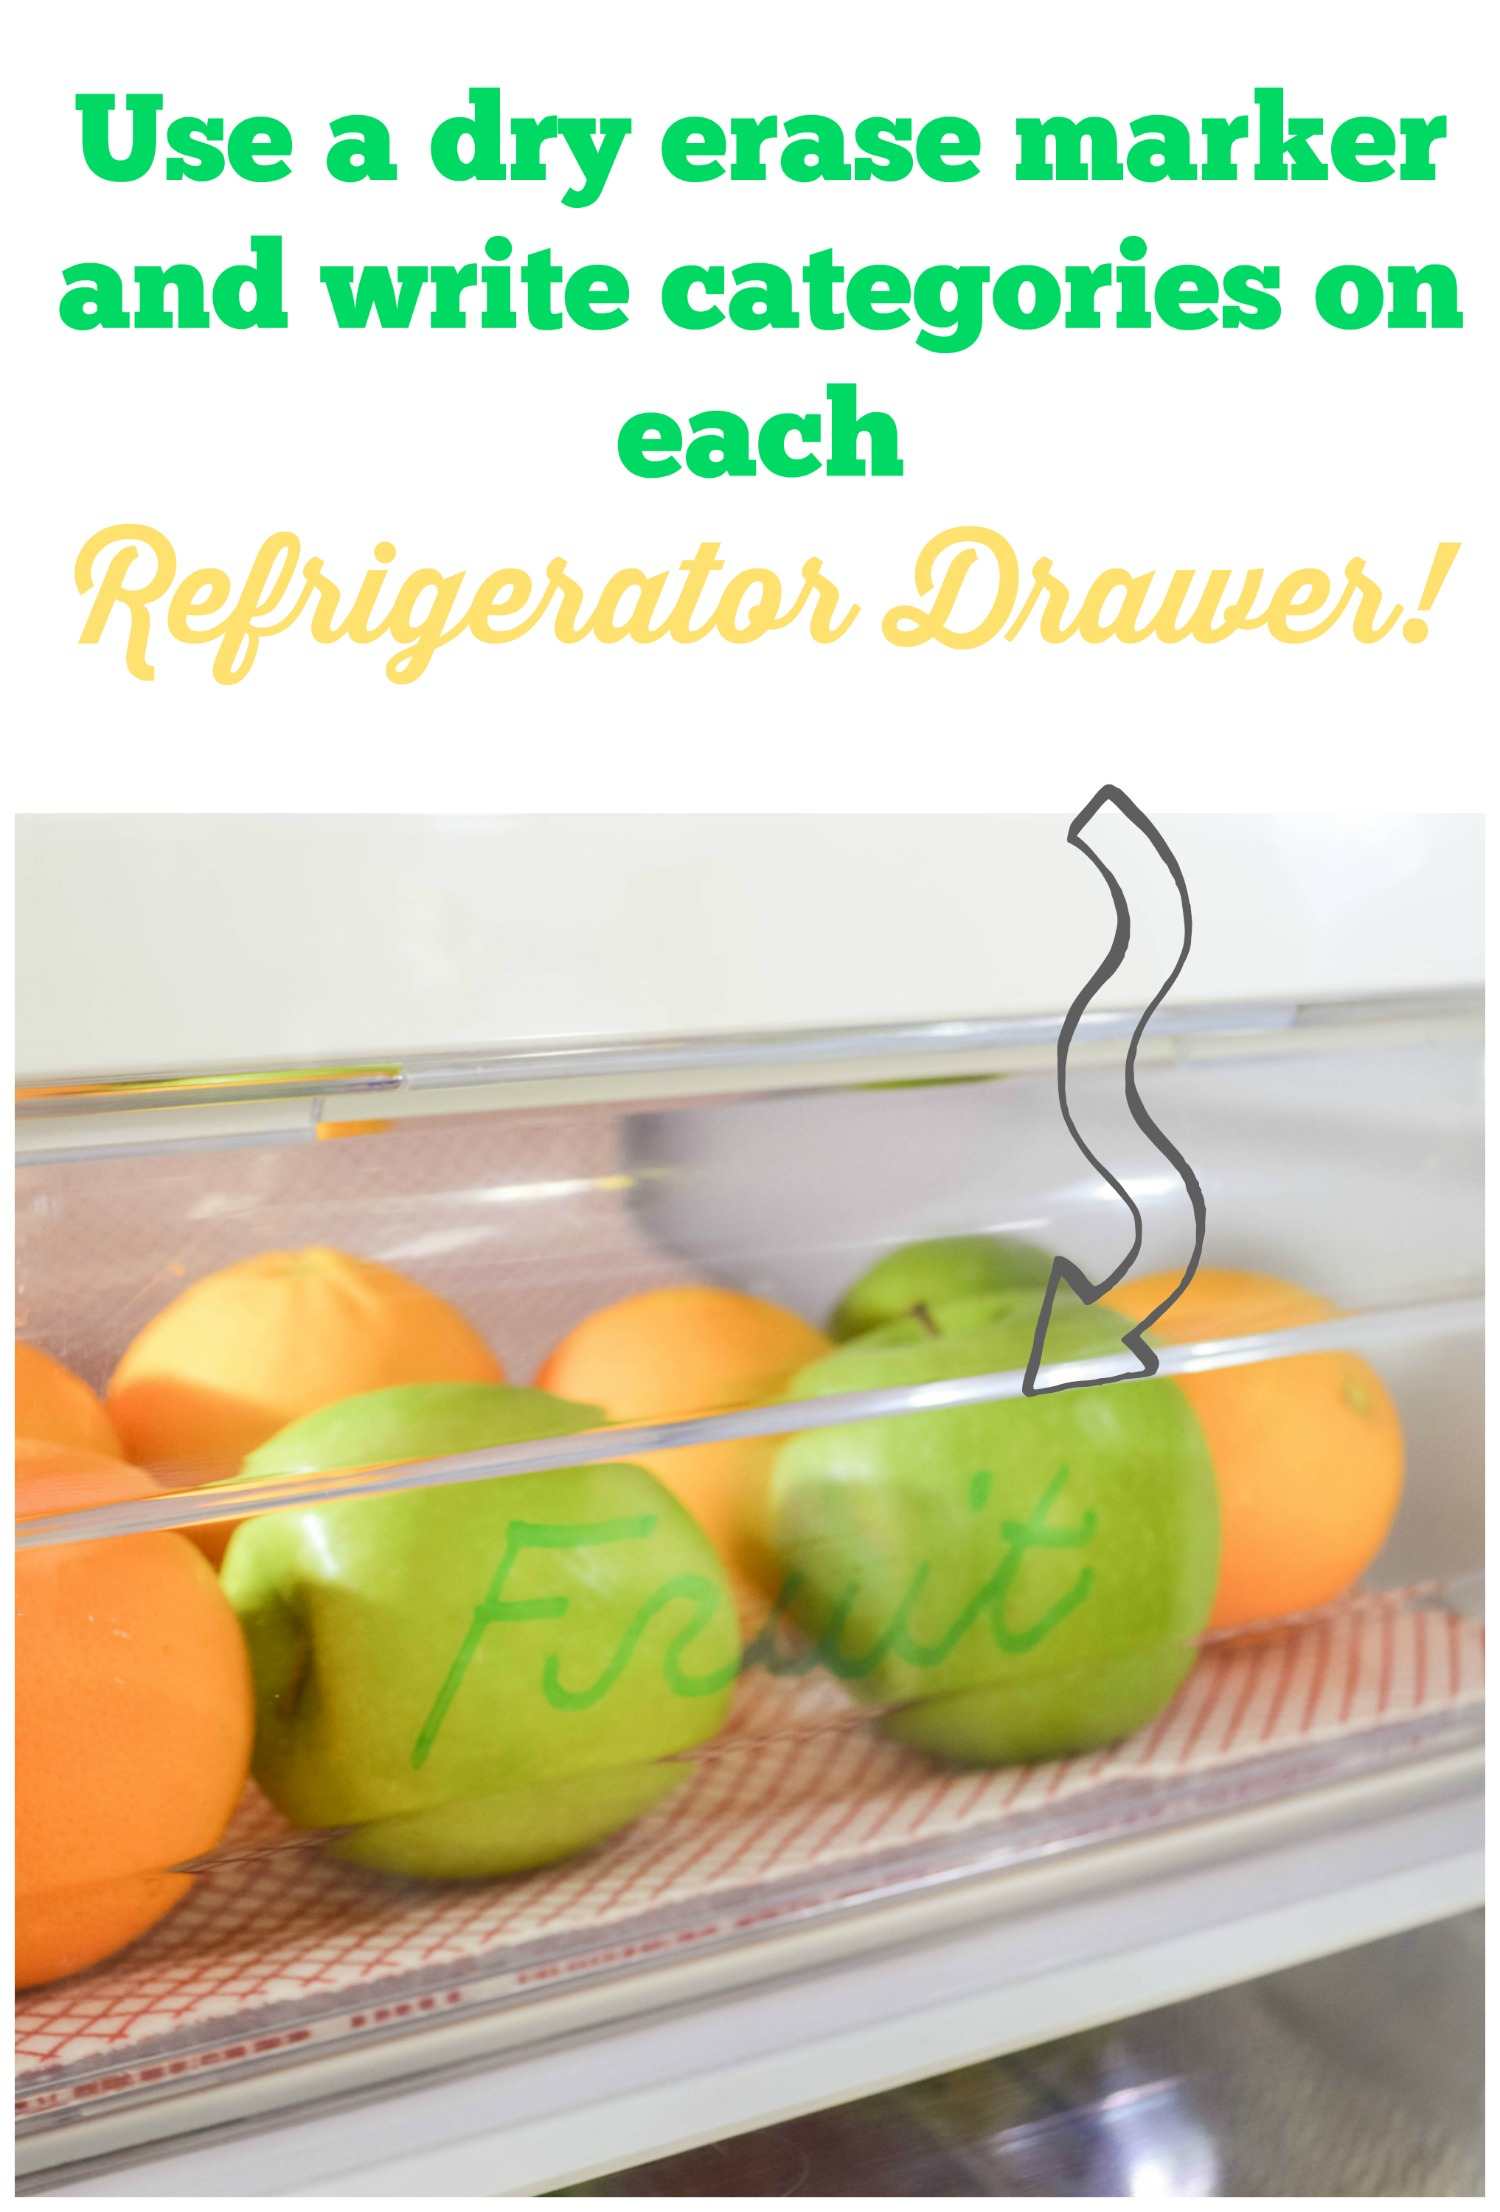 What a great tip using a dry erase marker on plastic drawers in the fridge!